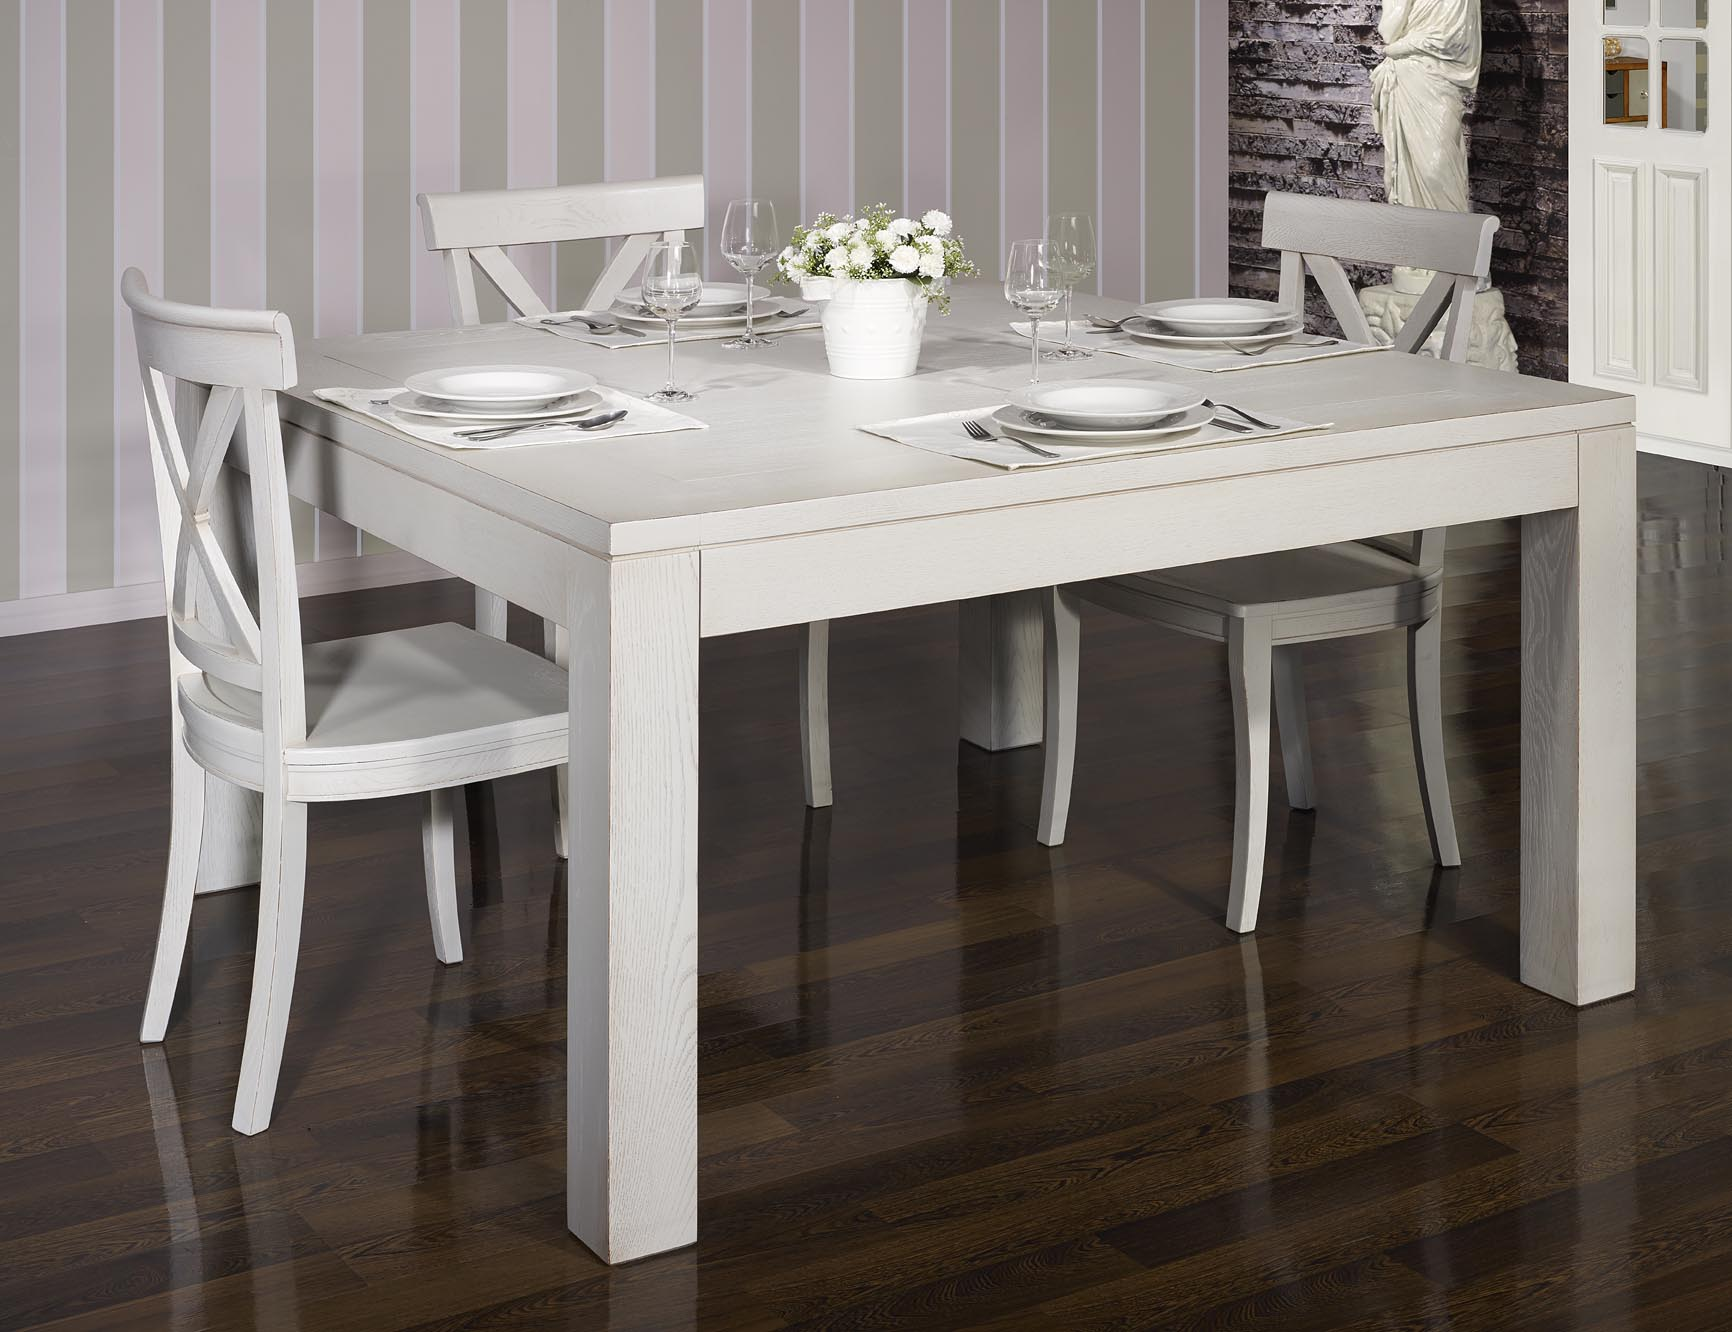 Table de salle manger 140 140 contemporaine en ch ne - Table salle a manger gris ...